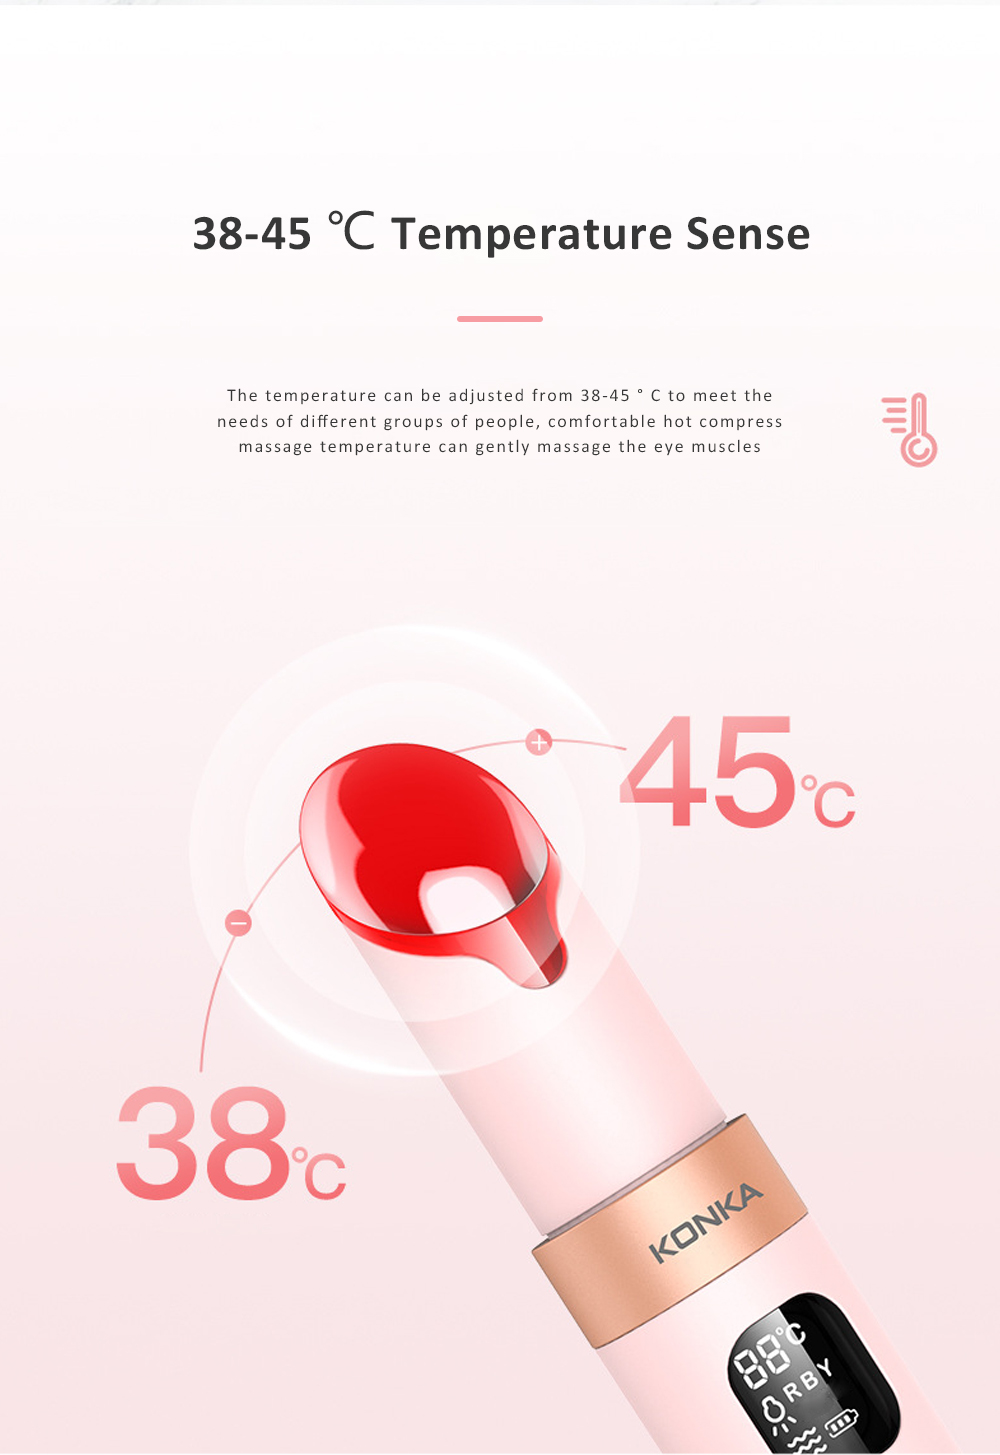 Personal Skin Care Beauty Equipment USB Vibration Facial Eye Massager Modes Eye Care Heat Functions Rechargeable 2